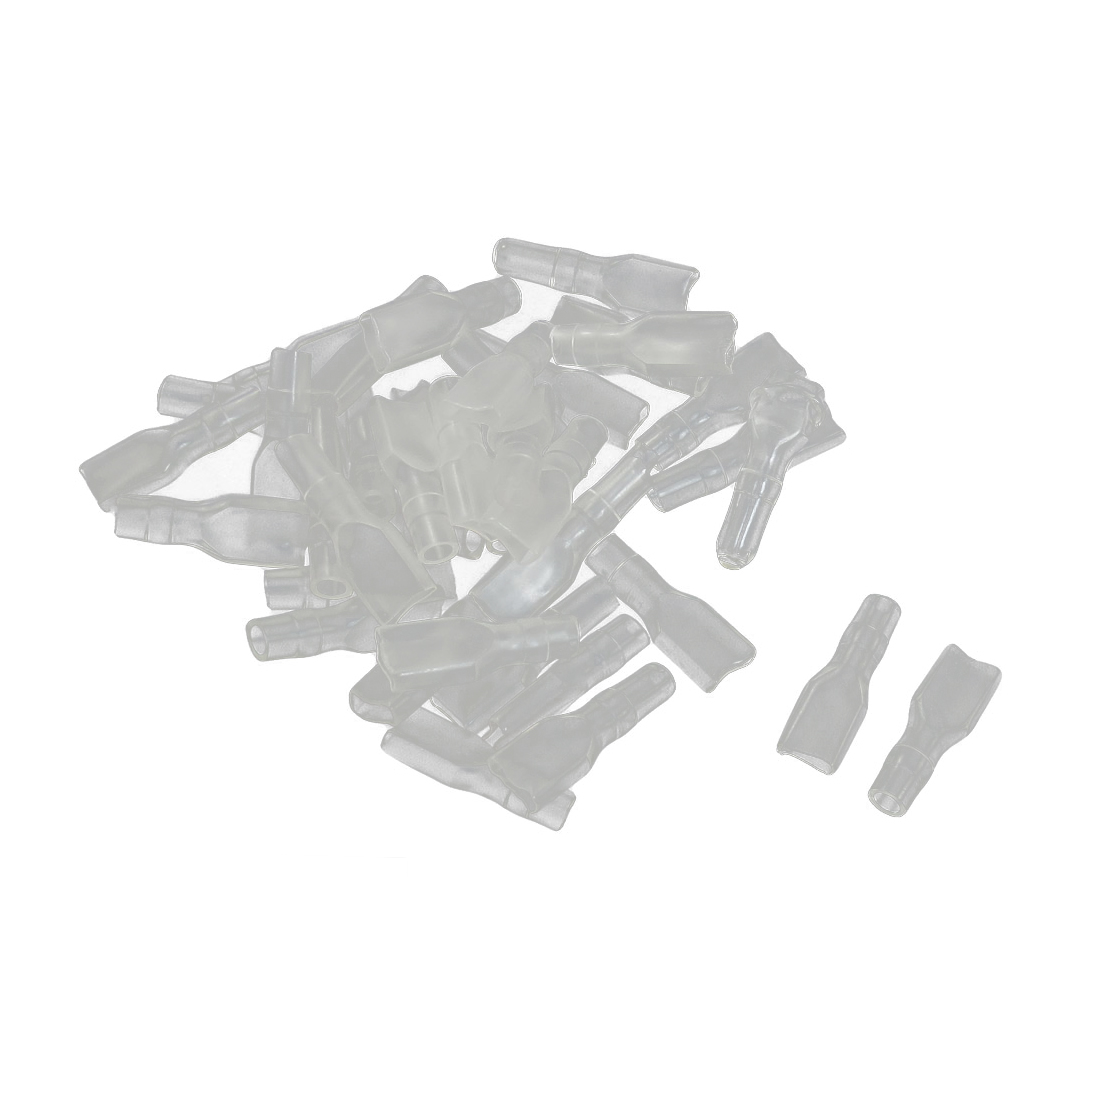 40 Pcs 4.8mm Hole Clear PVC Insulated Ring Terminal Caps Boots Covers